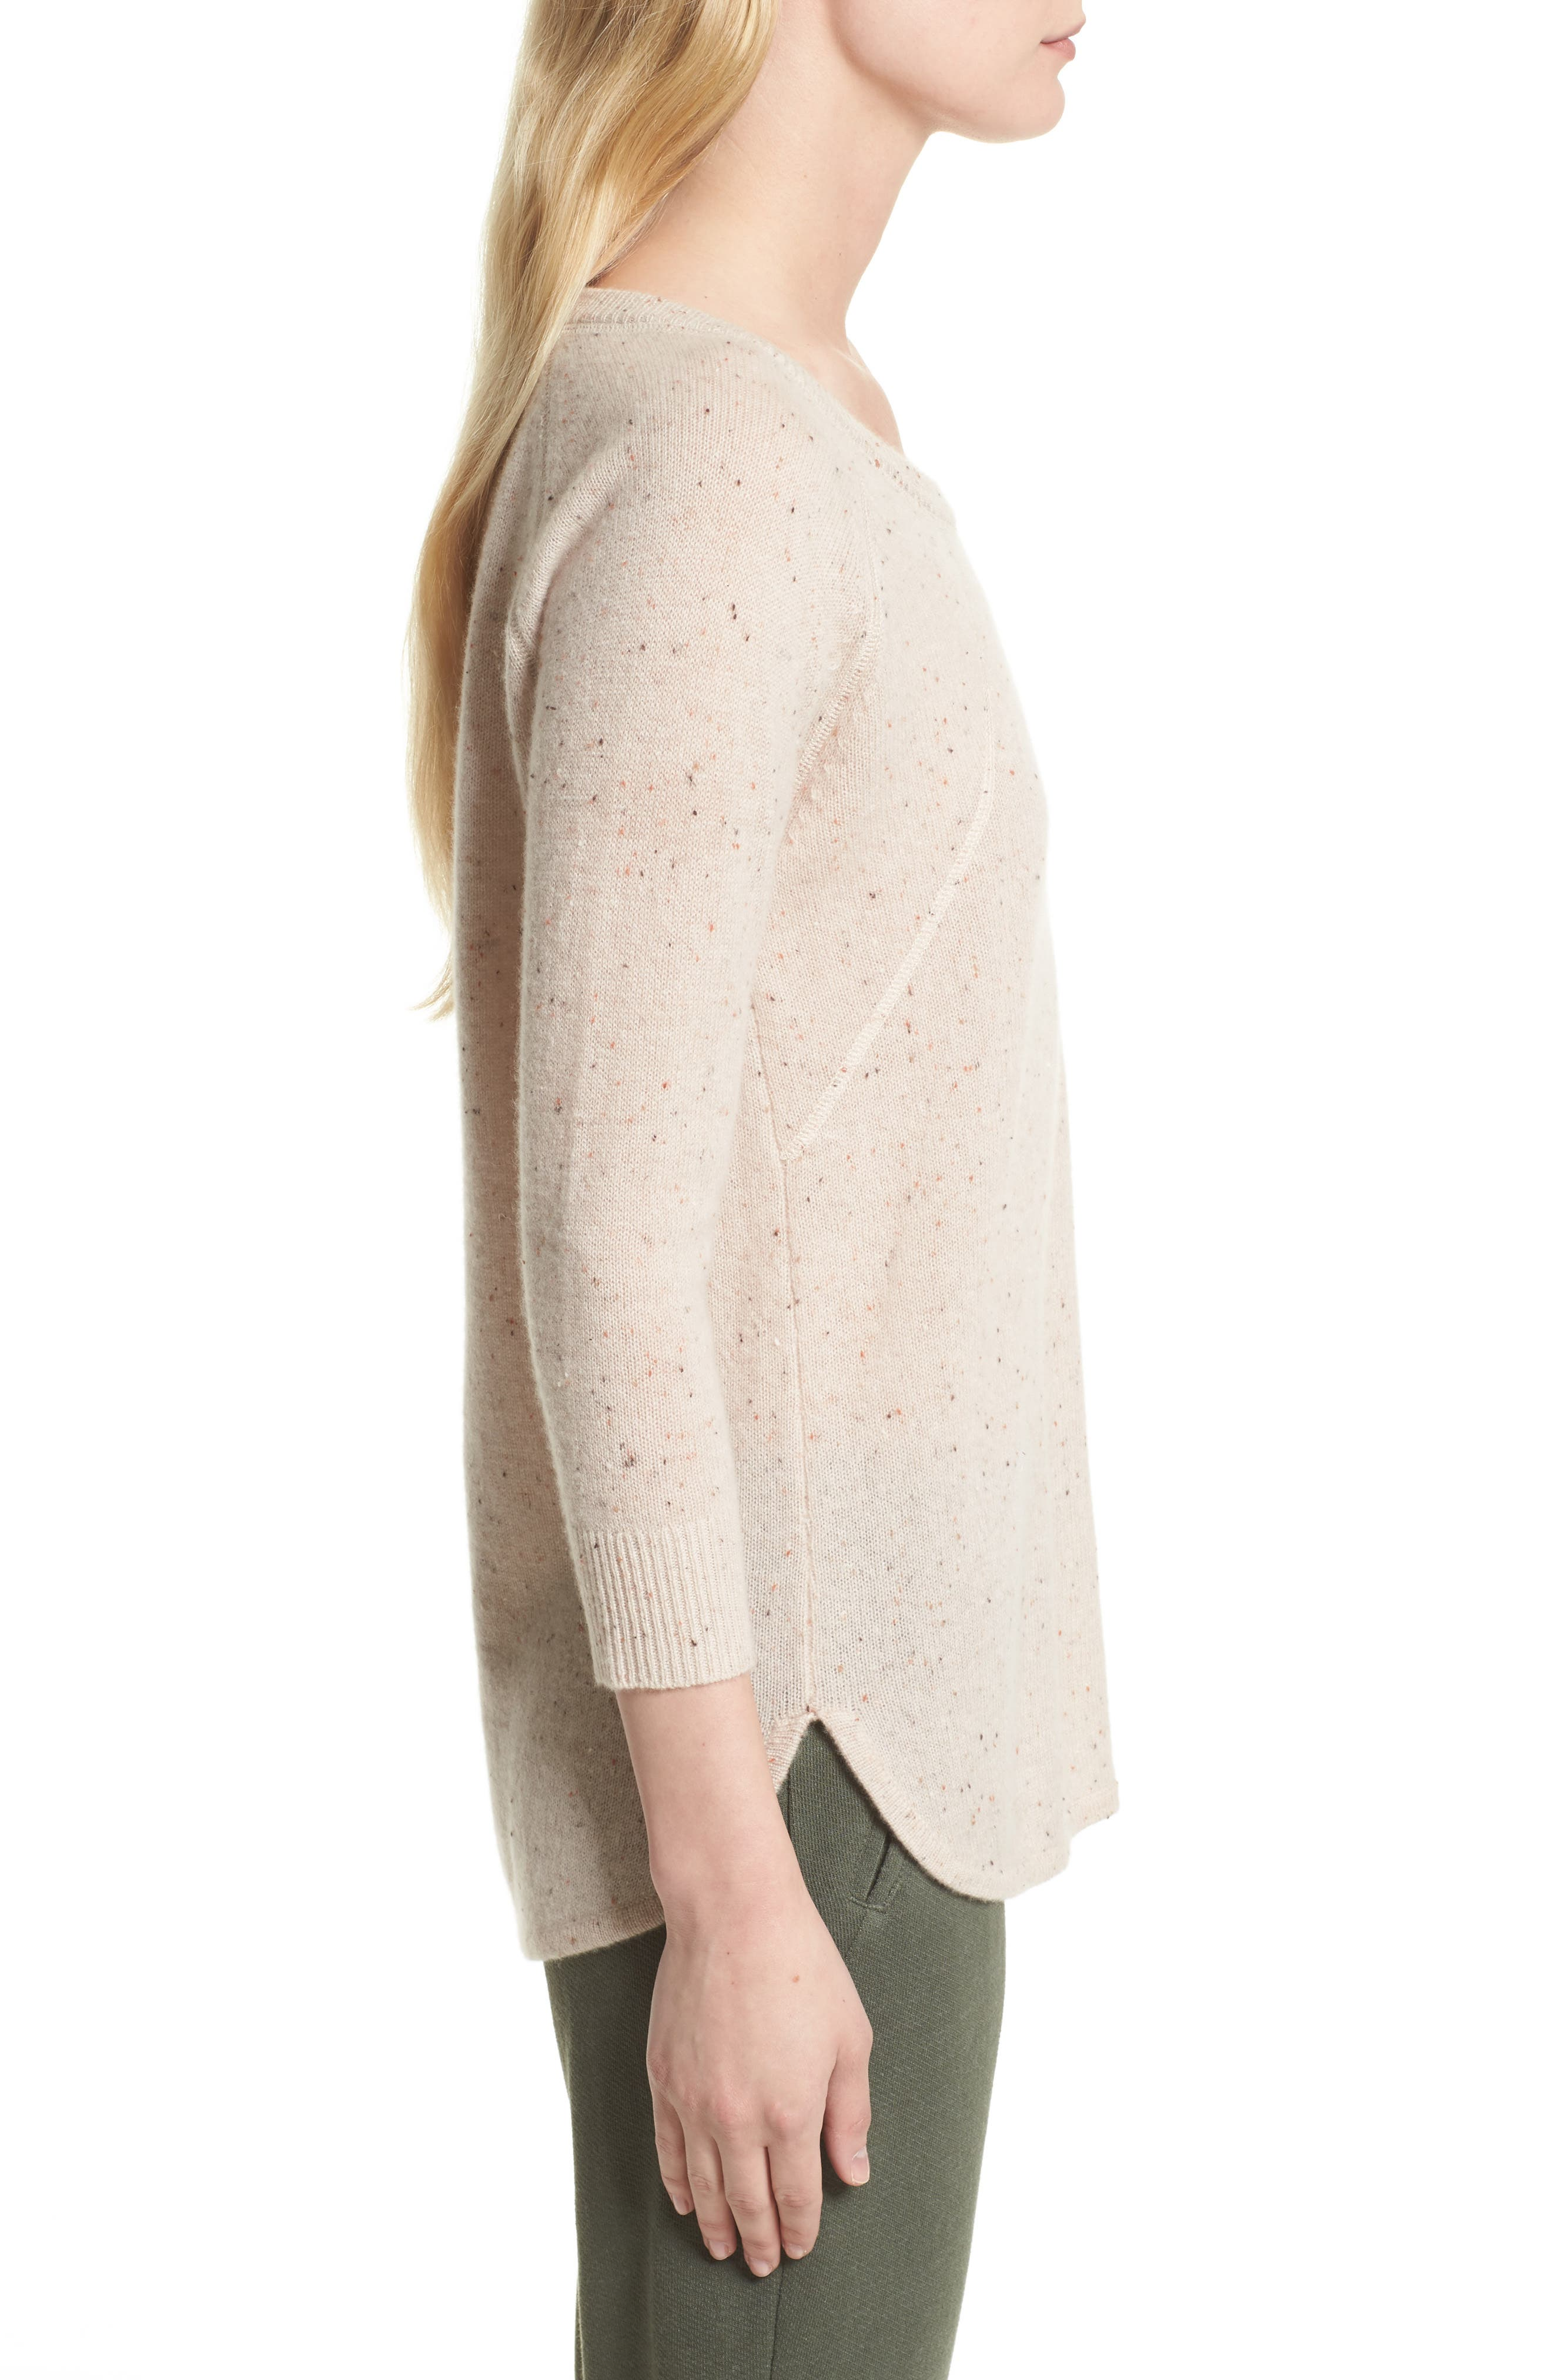 Alternate Image 3  - ATM Anthony Thomas Melillo Cashmere Sweater (Nordstrom Exclusive)